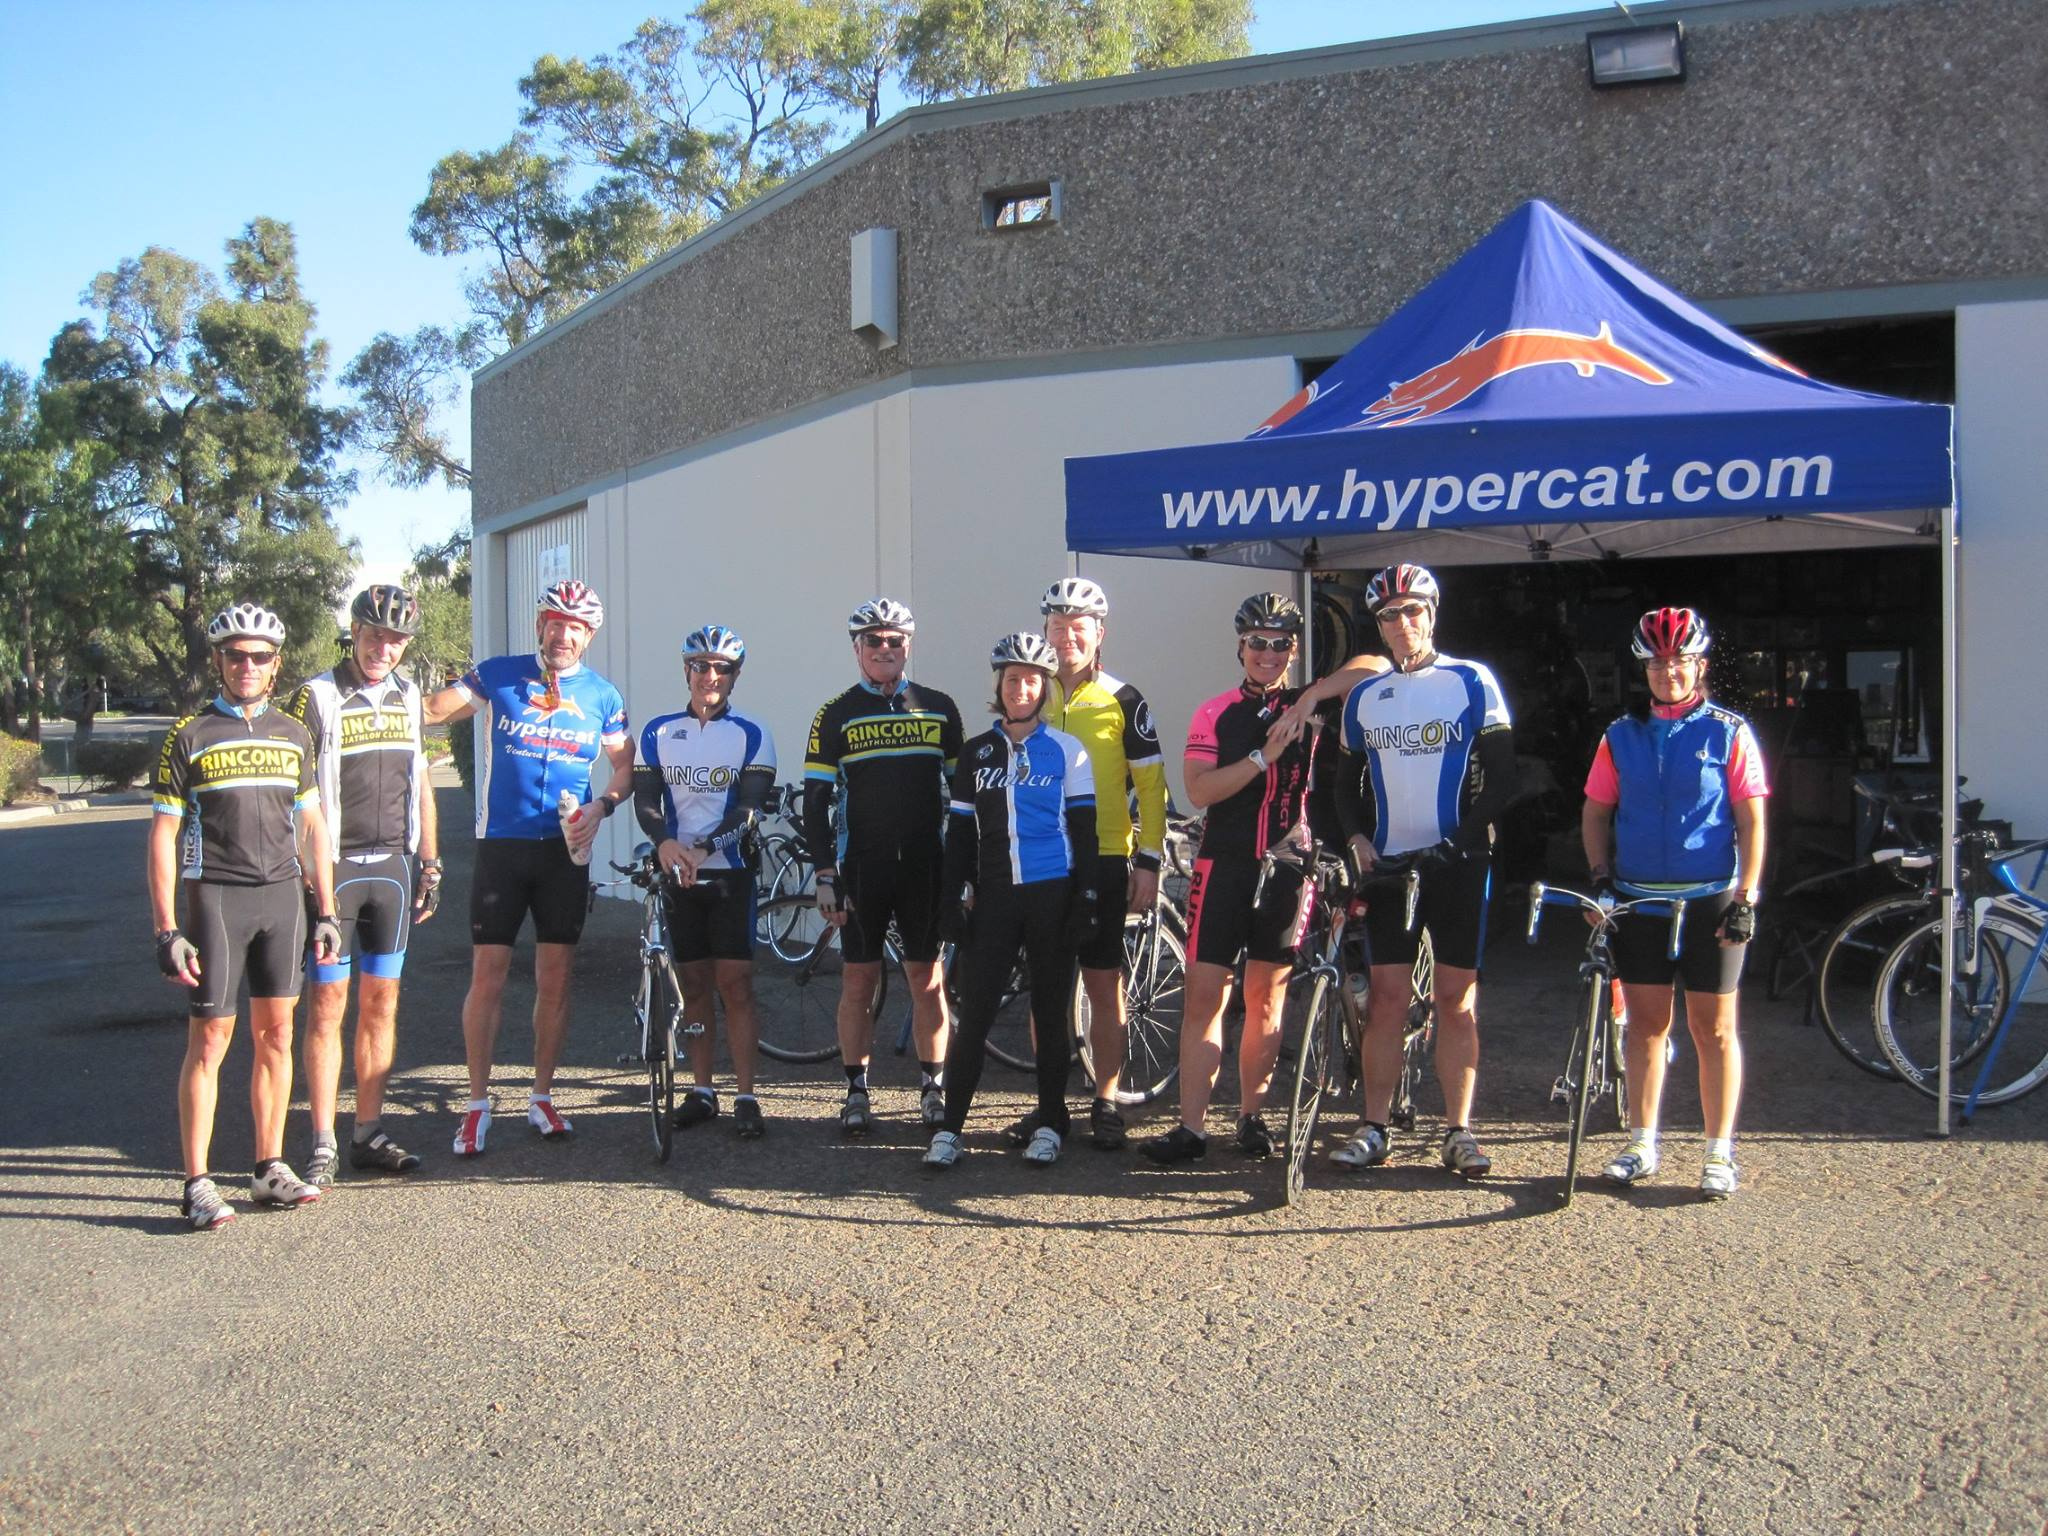 Ten cyclists pose outside Hypercat Cycleworks before a ride